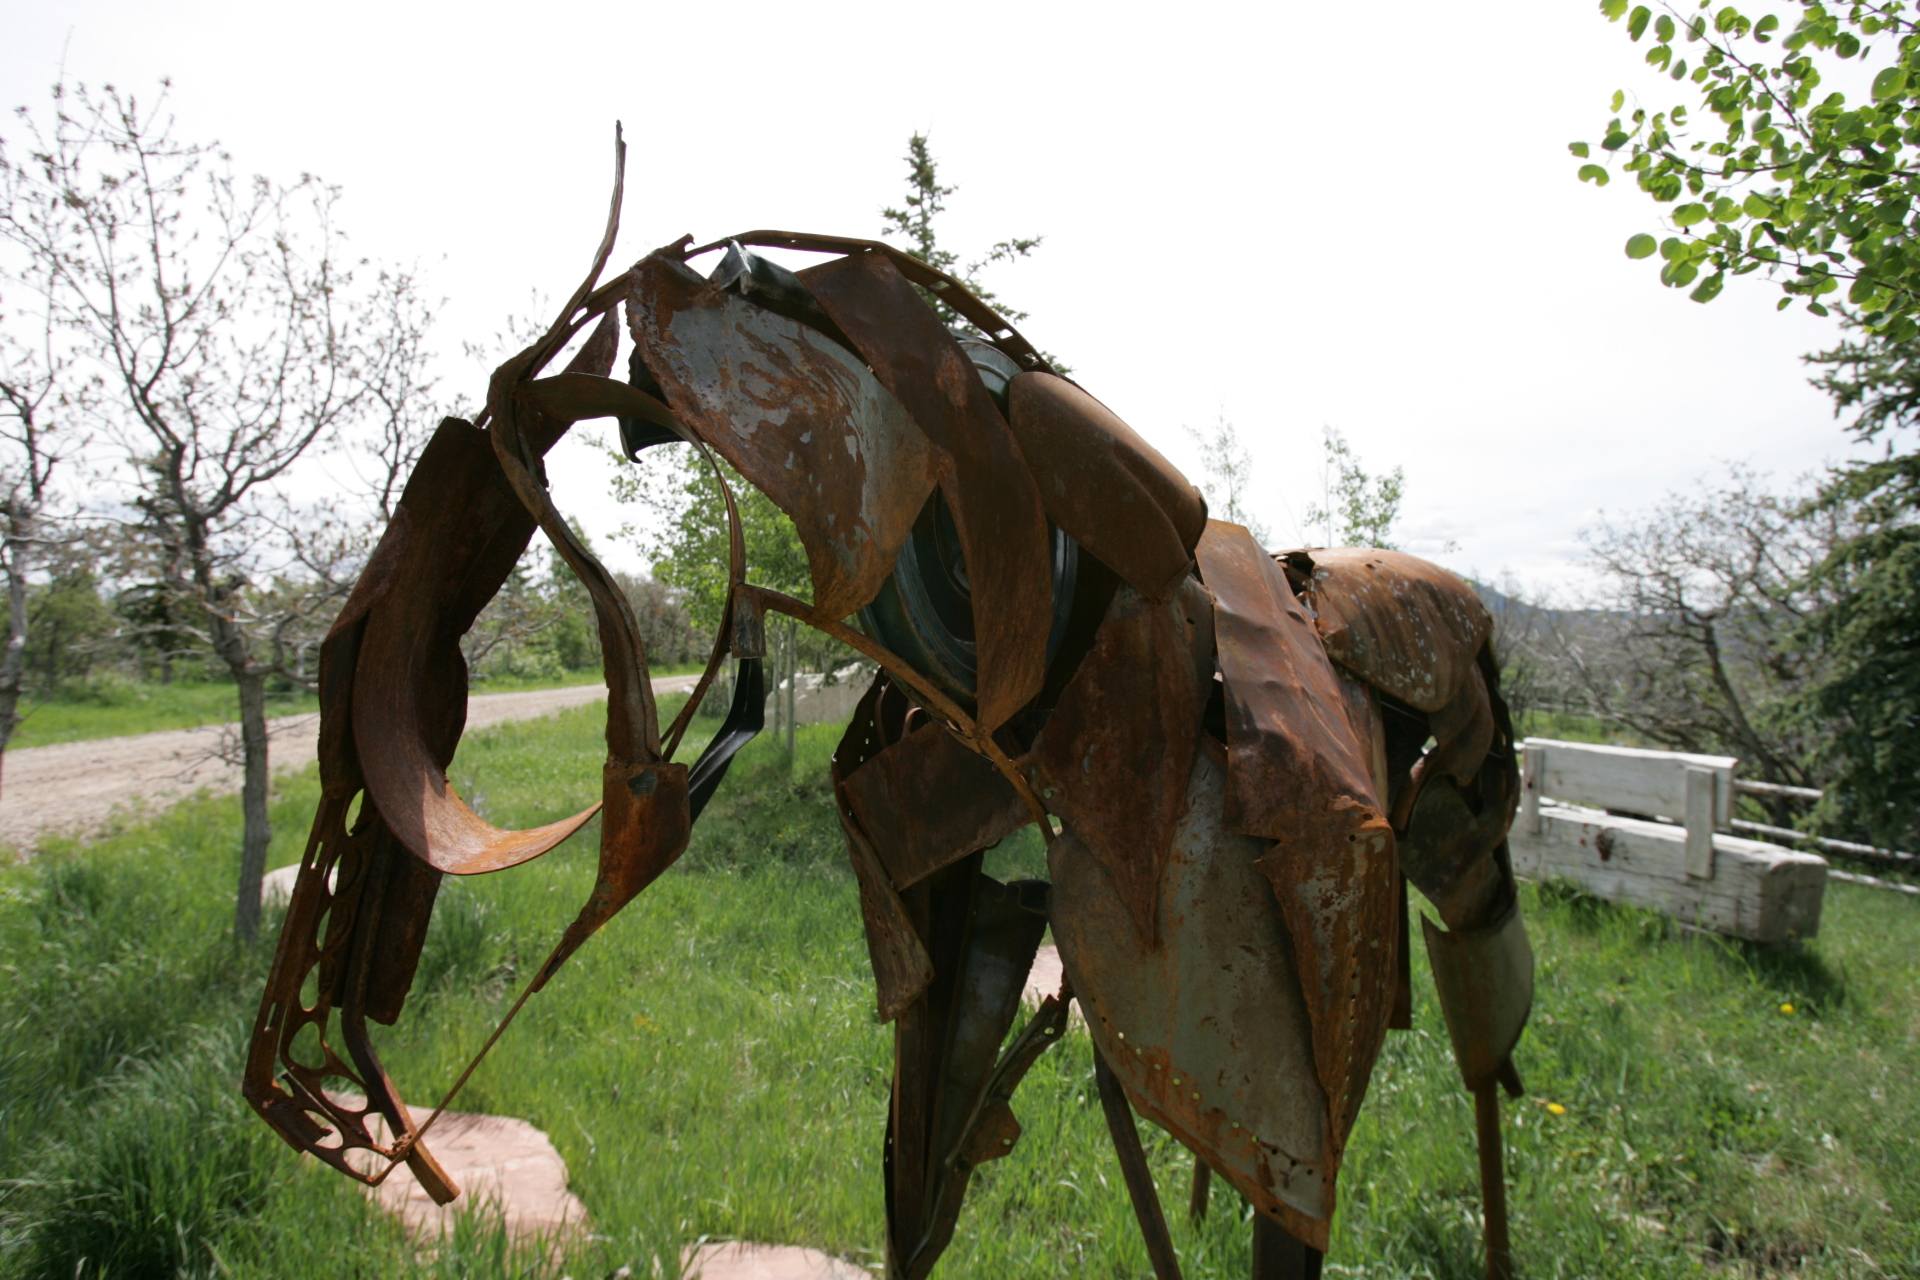 Life size horse sculpture, recycled steel, Rusty Croft, Carmel California